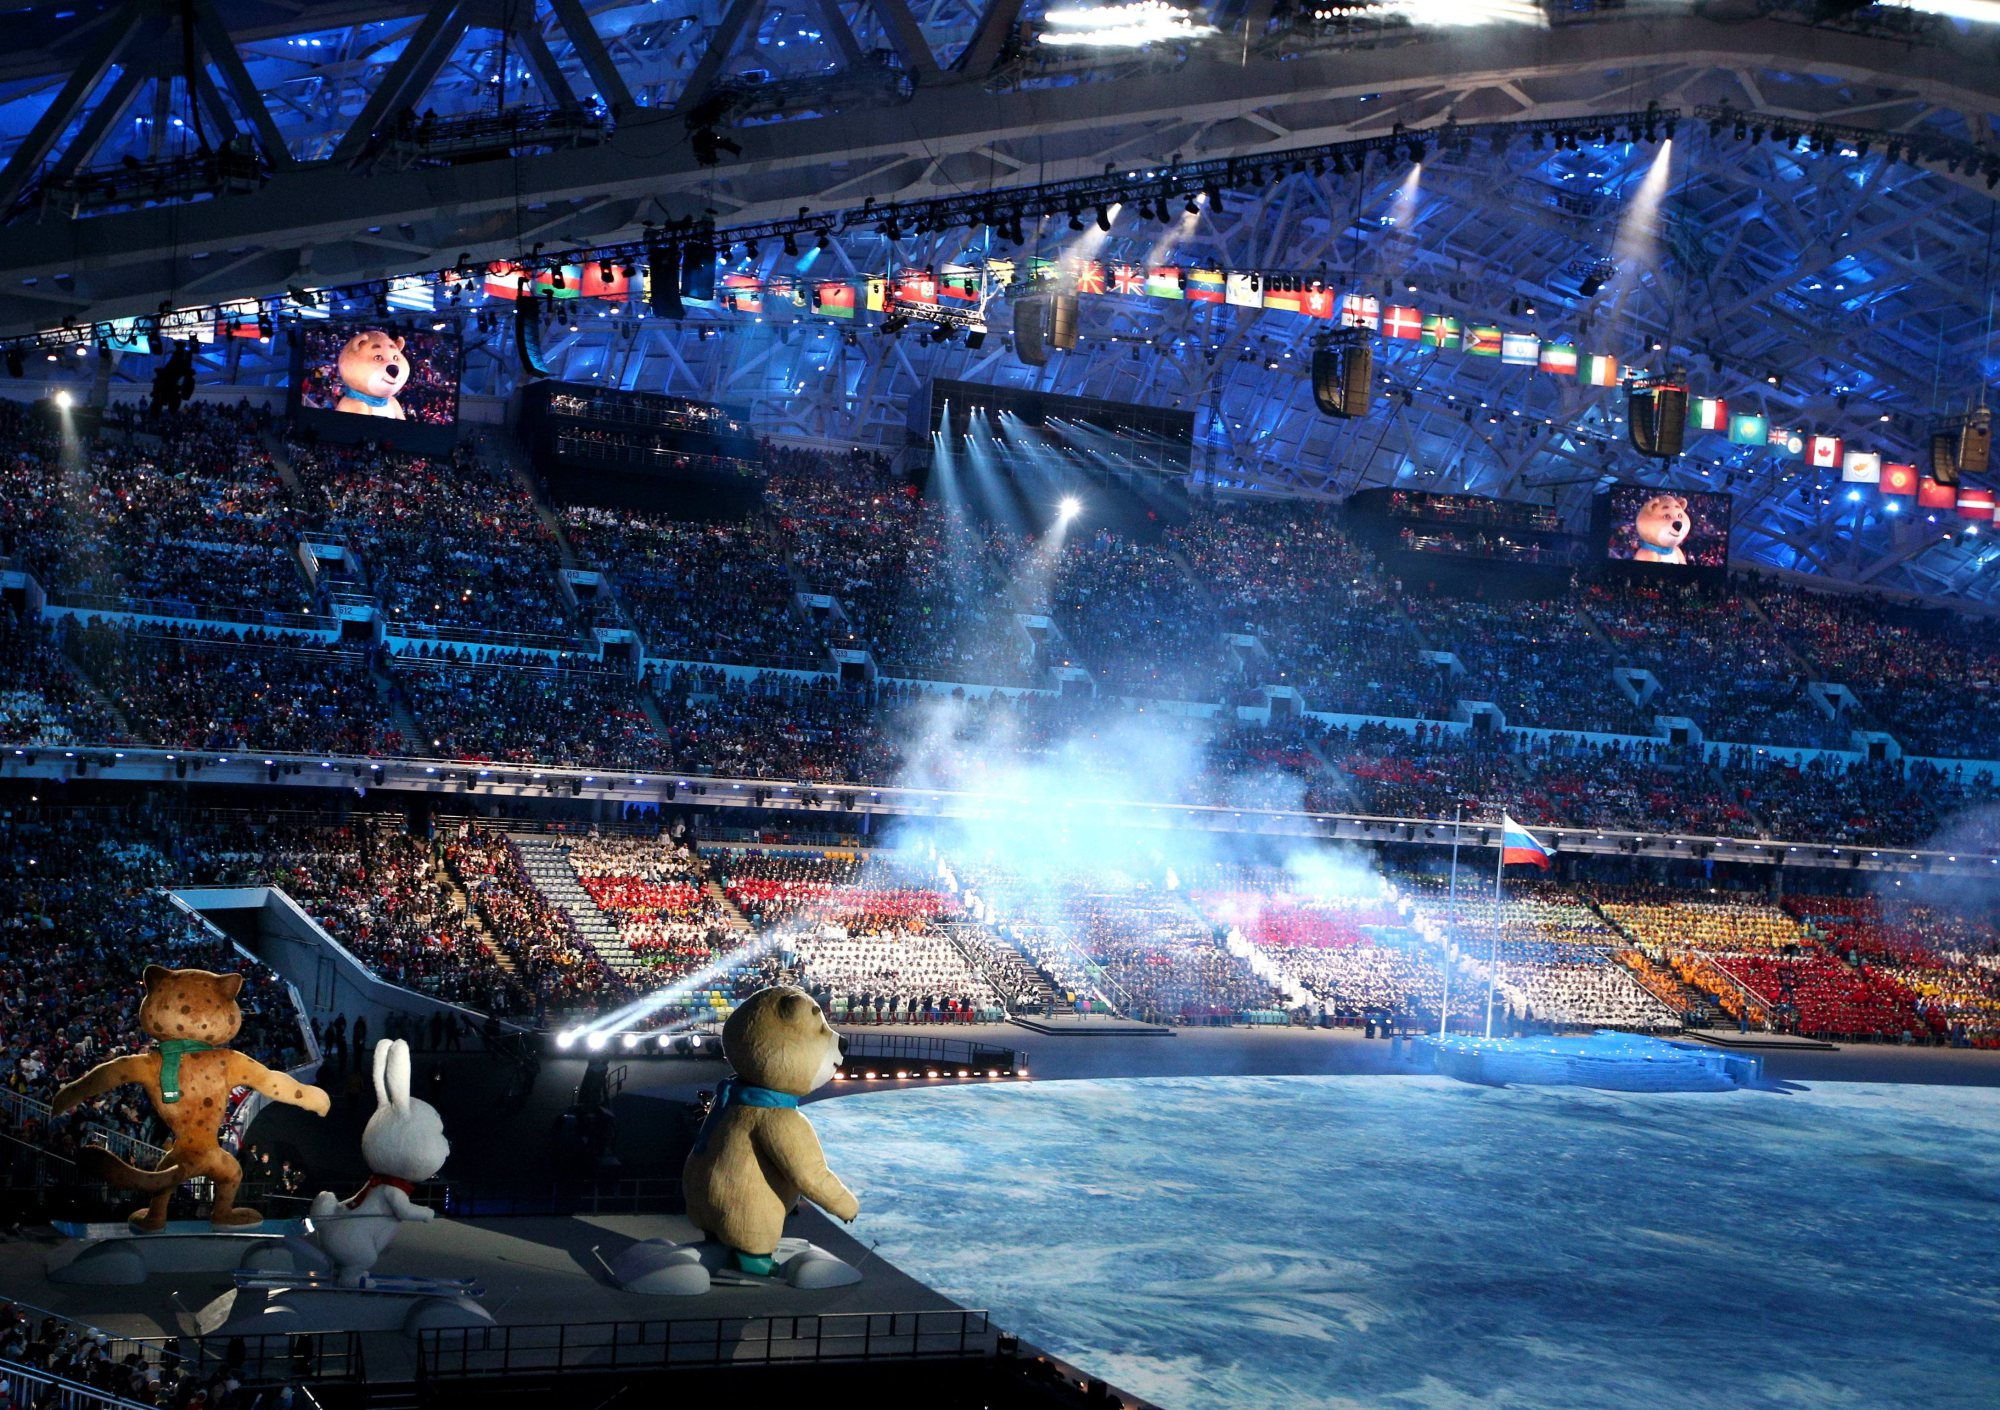 Sochi 2014 mascots prepare to come on stage during the opening ceremony.